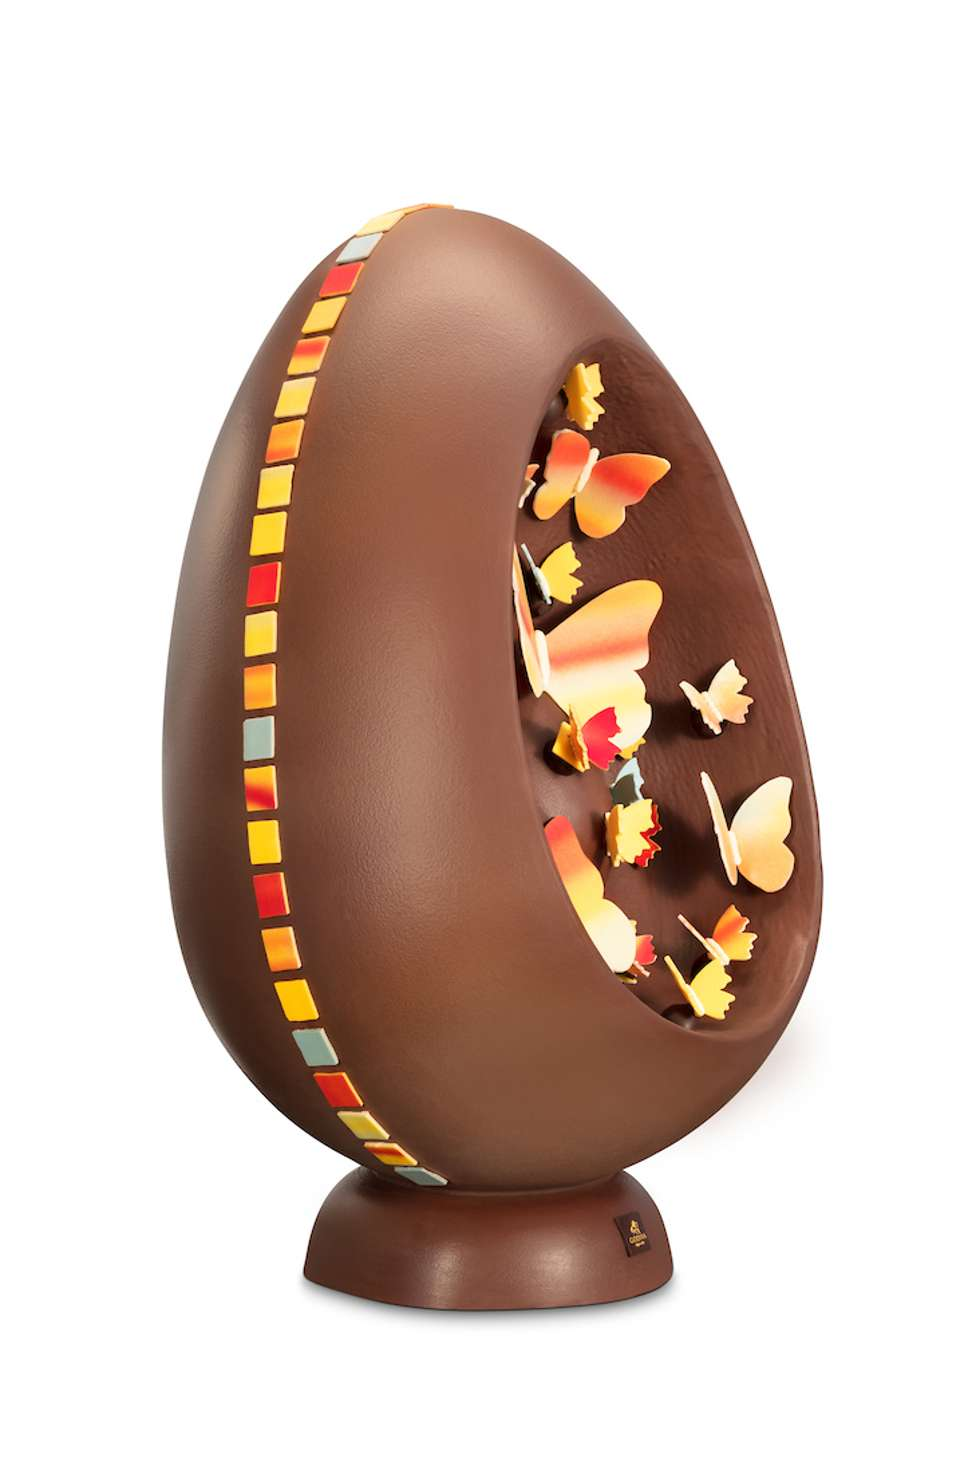 Easter Candy Eggs: 7 Over-the-top Easter Eggs Of Your Chocolate-filled Dreams